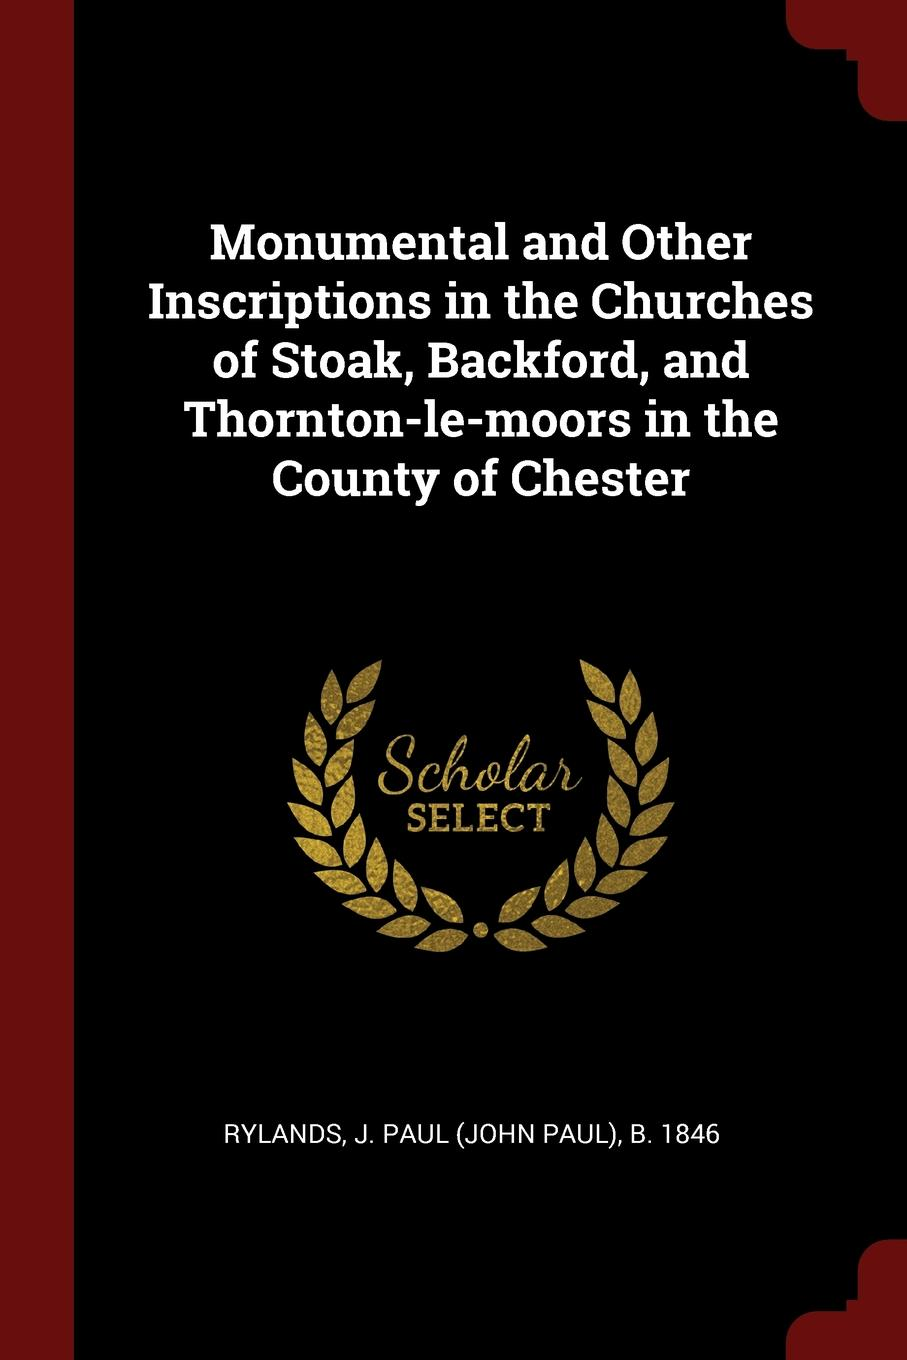 Monumental and Other Inscriptions in the Churches of Stoak, Backford, and Thornton-le-moors in the County of Chester